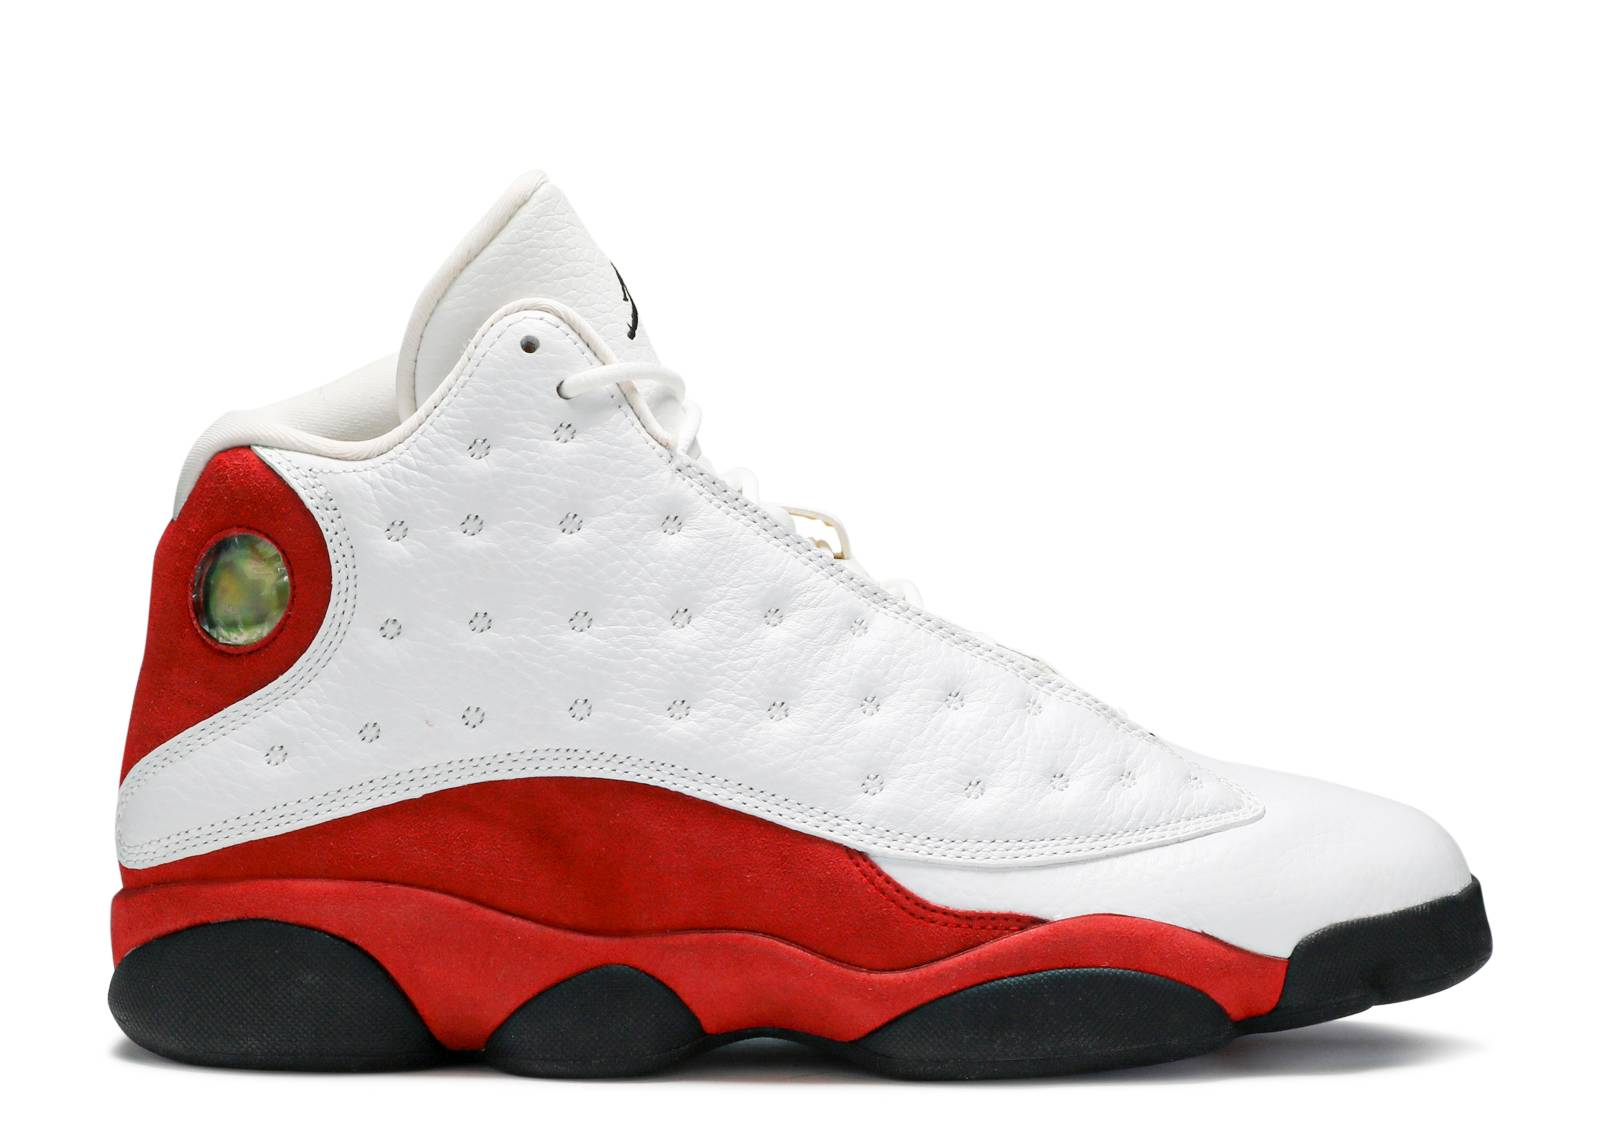 Air Jordan 13 Retro White Black Varsity Red